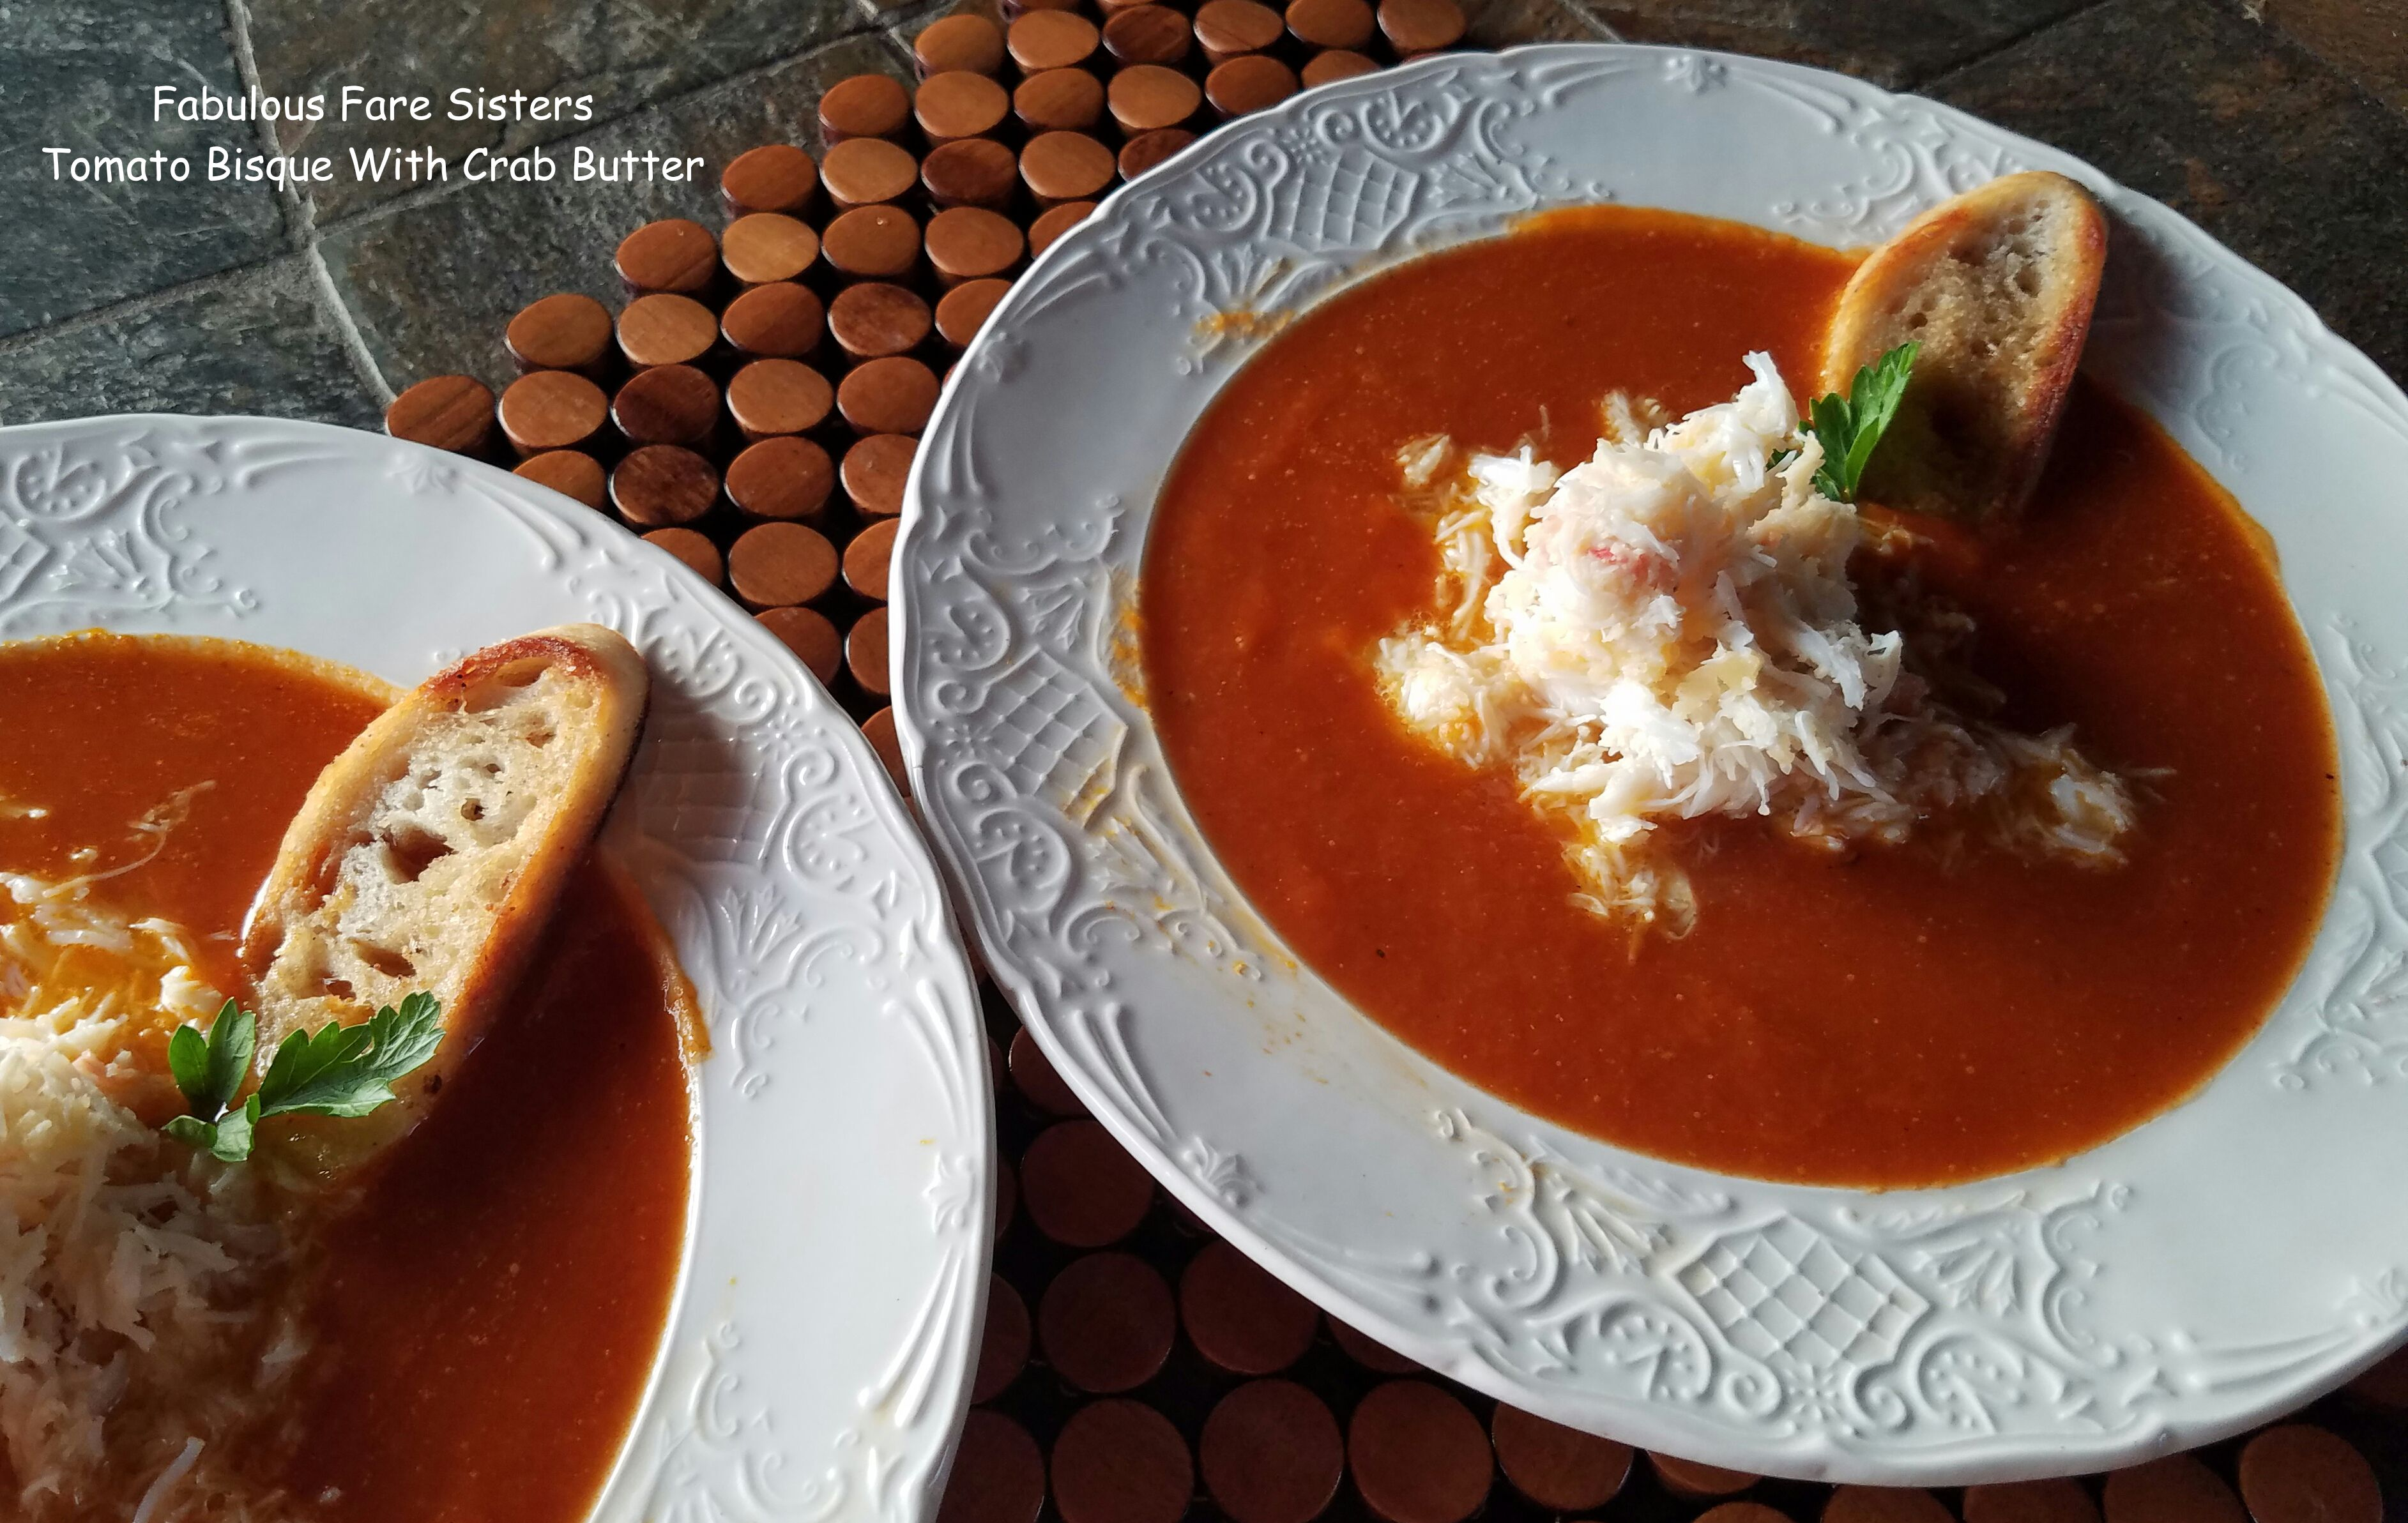 Tomato Bisque With Crab Butter